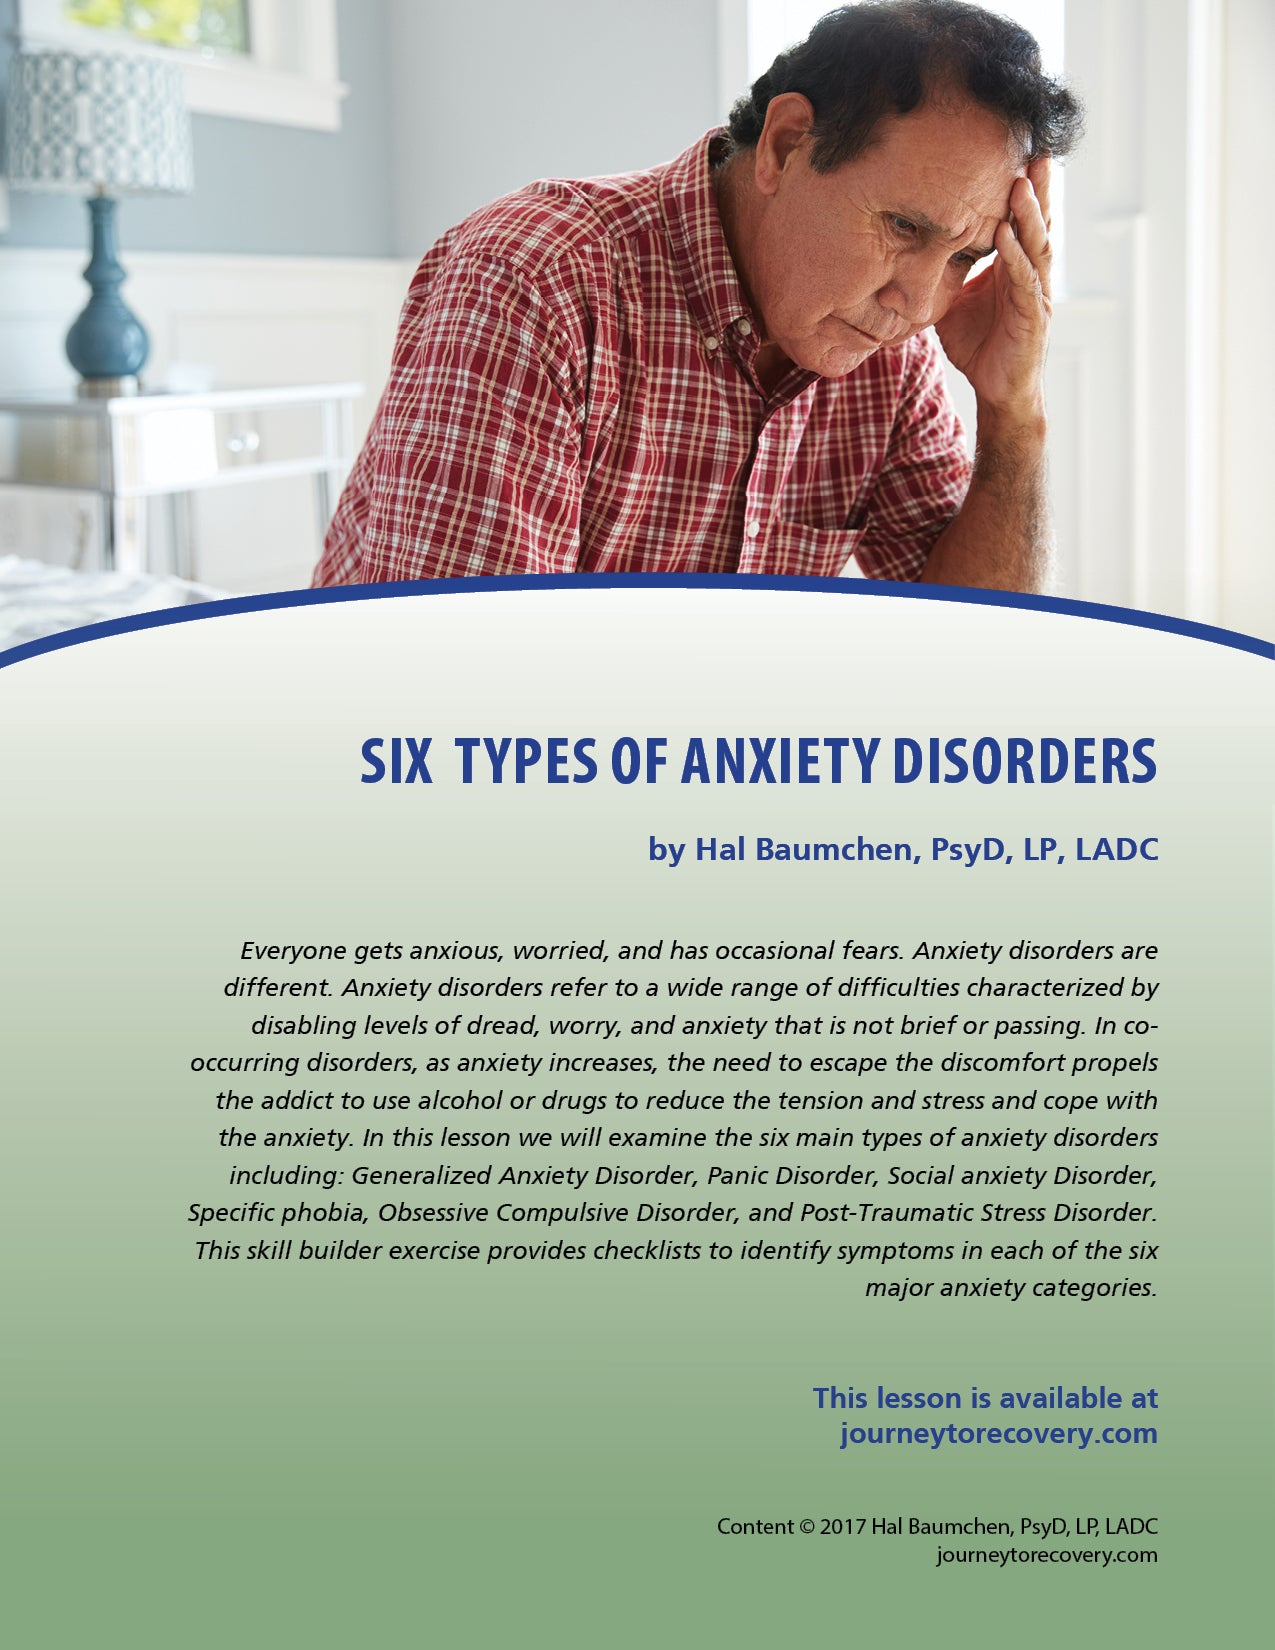 Six Types of Anxiety Disorders